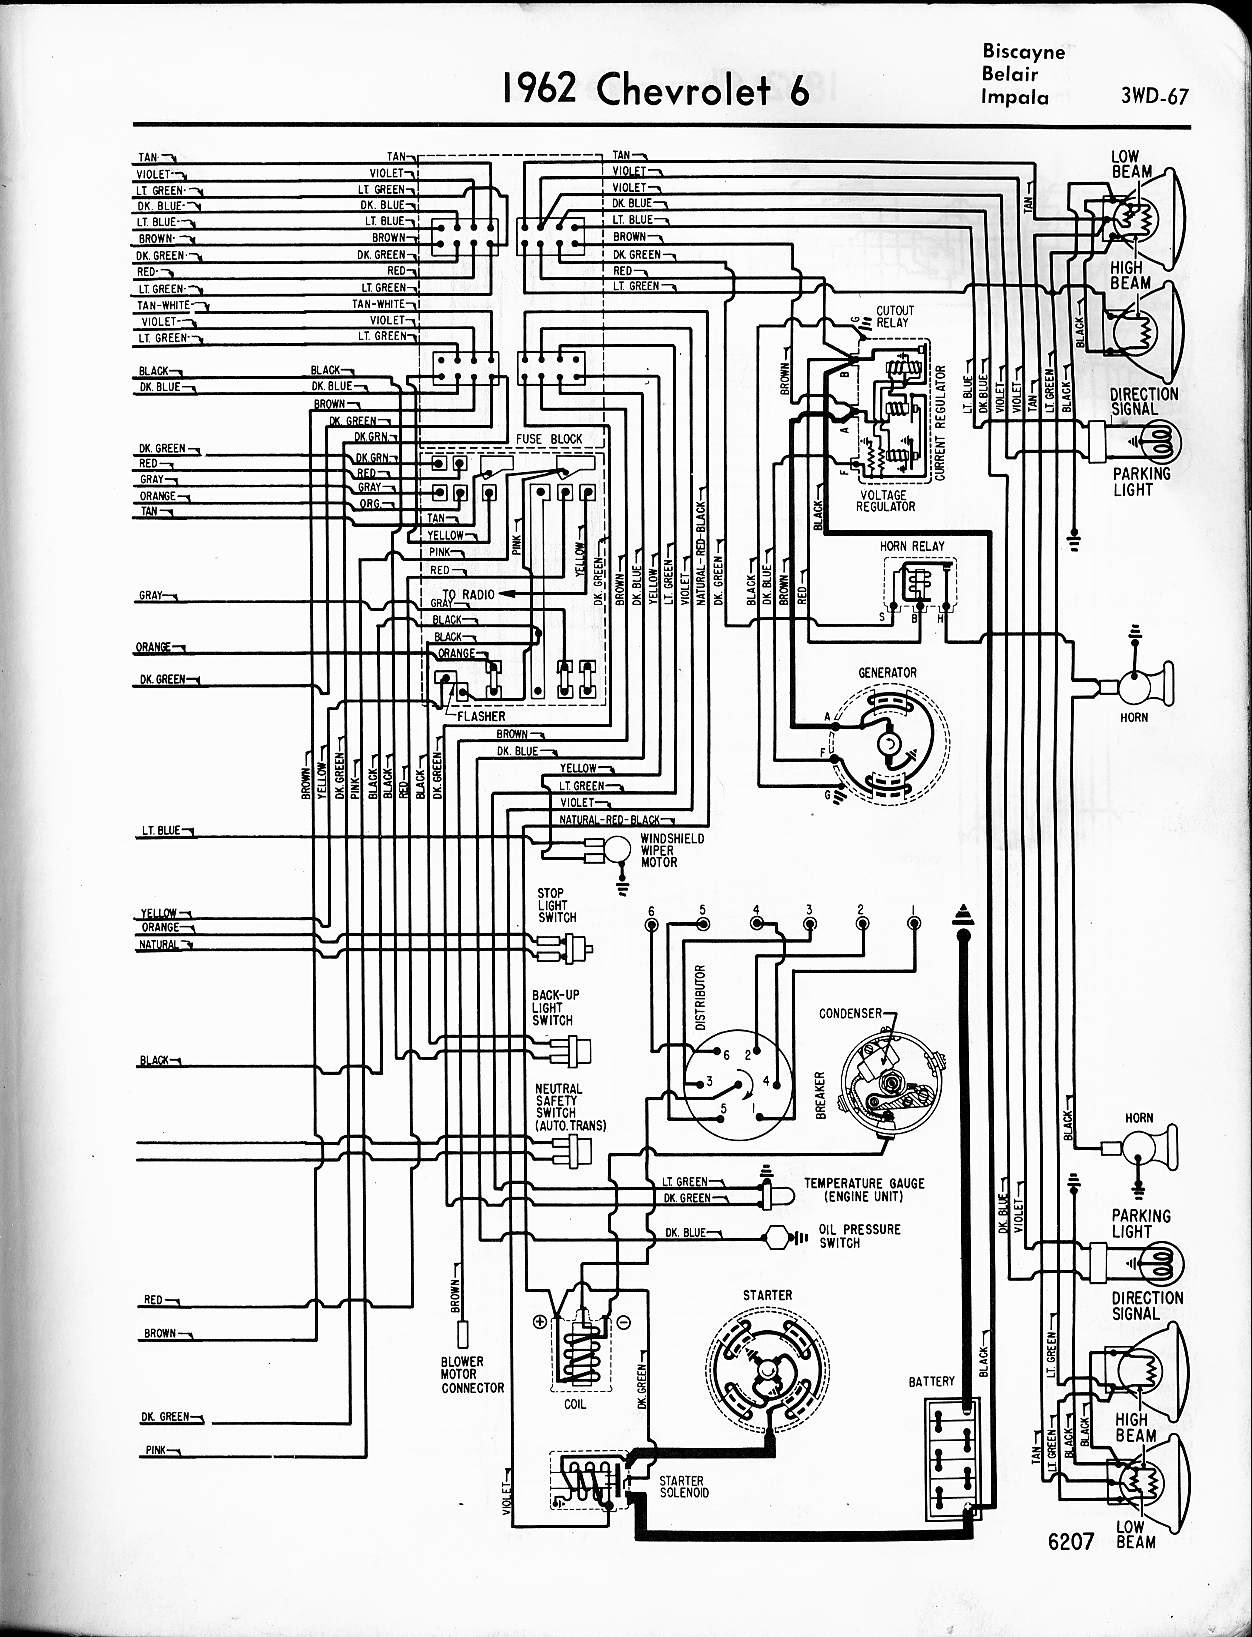 Chevy Impala Ignition Wiring - Wiring Diagram | 2005 Impala Engine Wiring Harness Diagram |  | cars-trucks24.blogspot.com